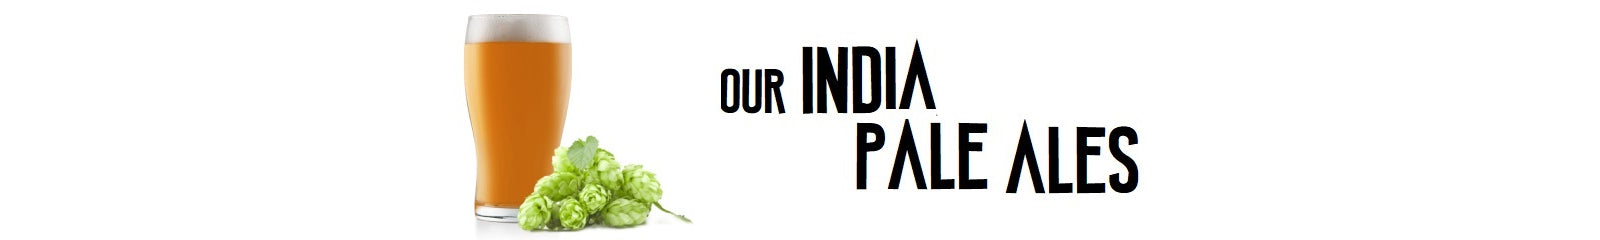 Our India Pale Ales (IPA) !